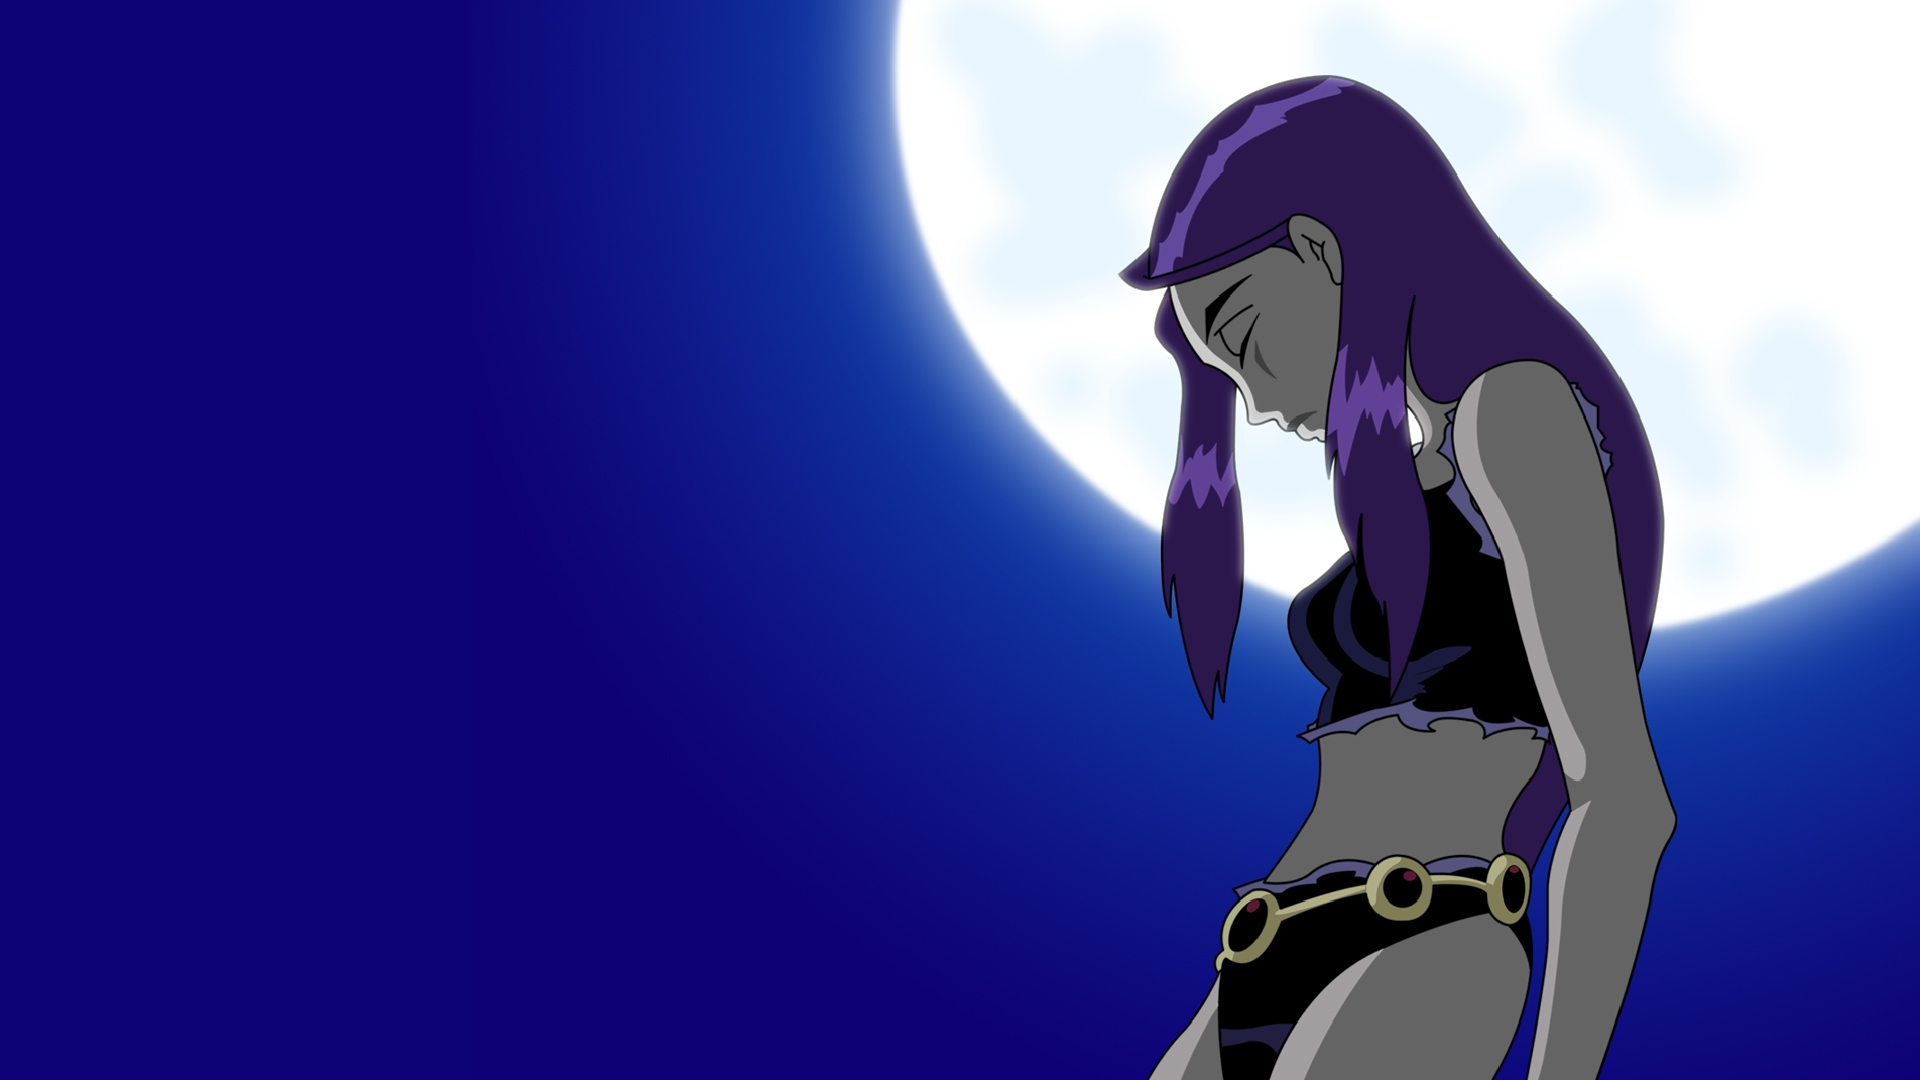 7 Teen Titans Hd Wallpapers Backgrounds Wallpaper Abyss